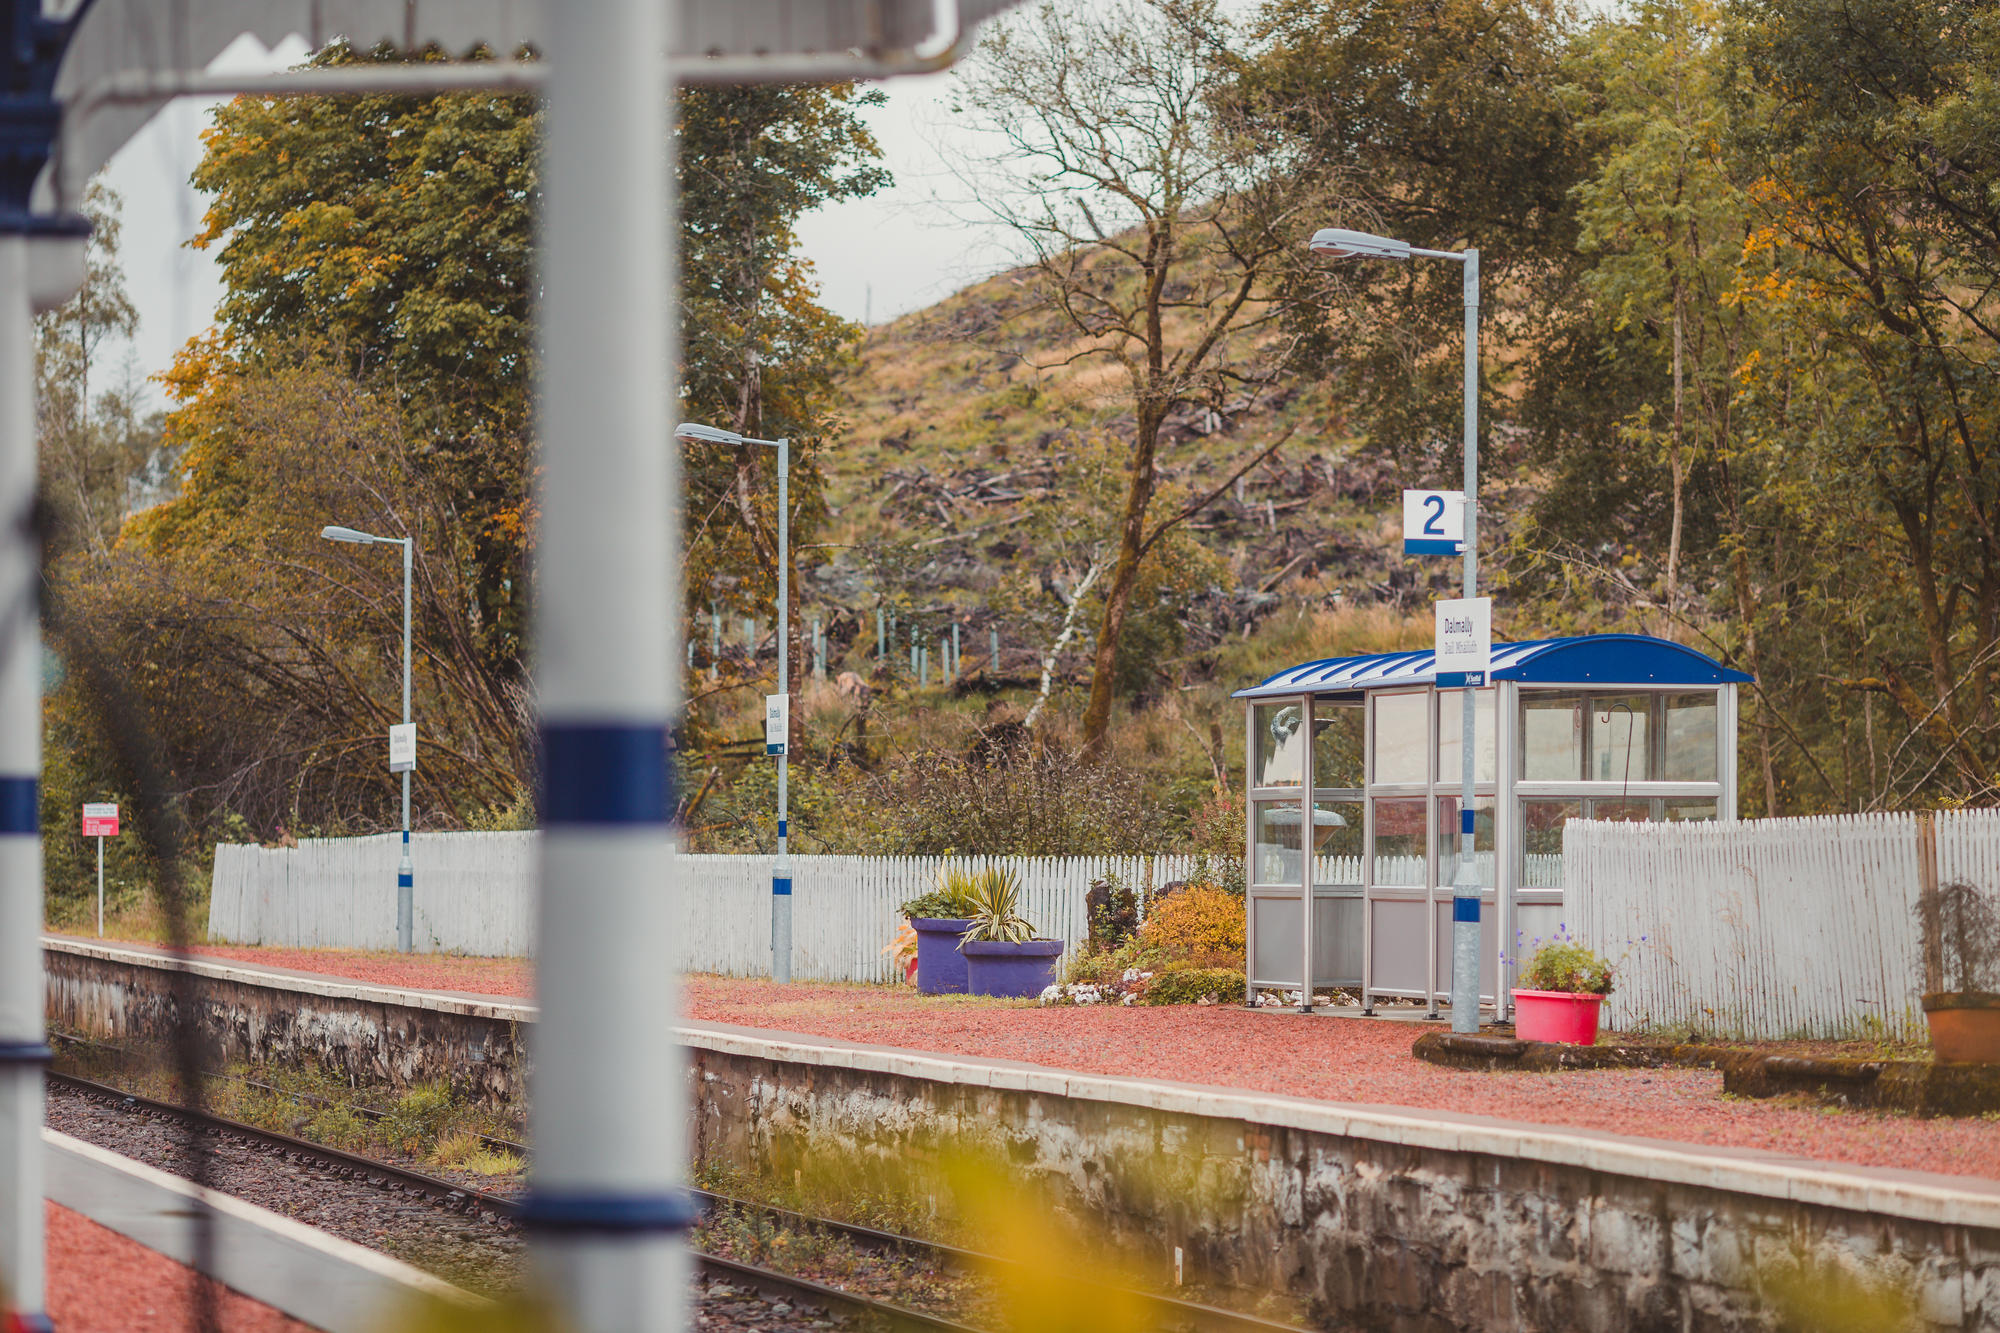 scotland-airbnb-dalmally-railway-station-04